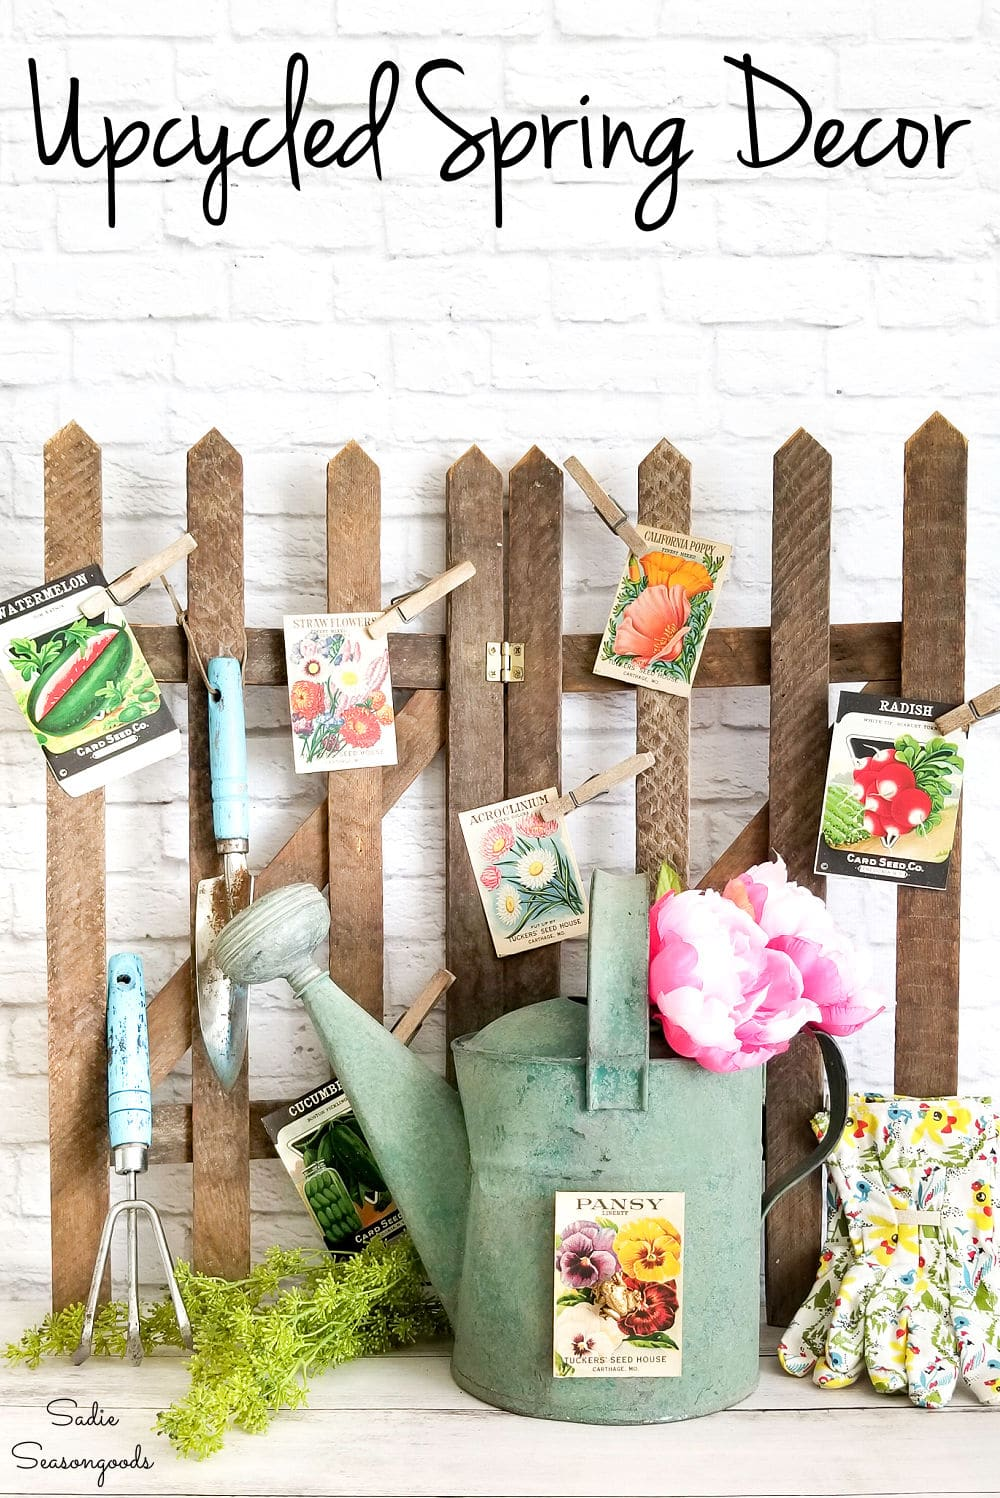 Easy upcycling ideas for Spring decor